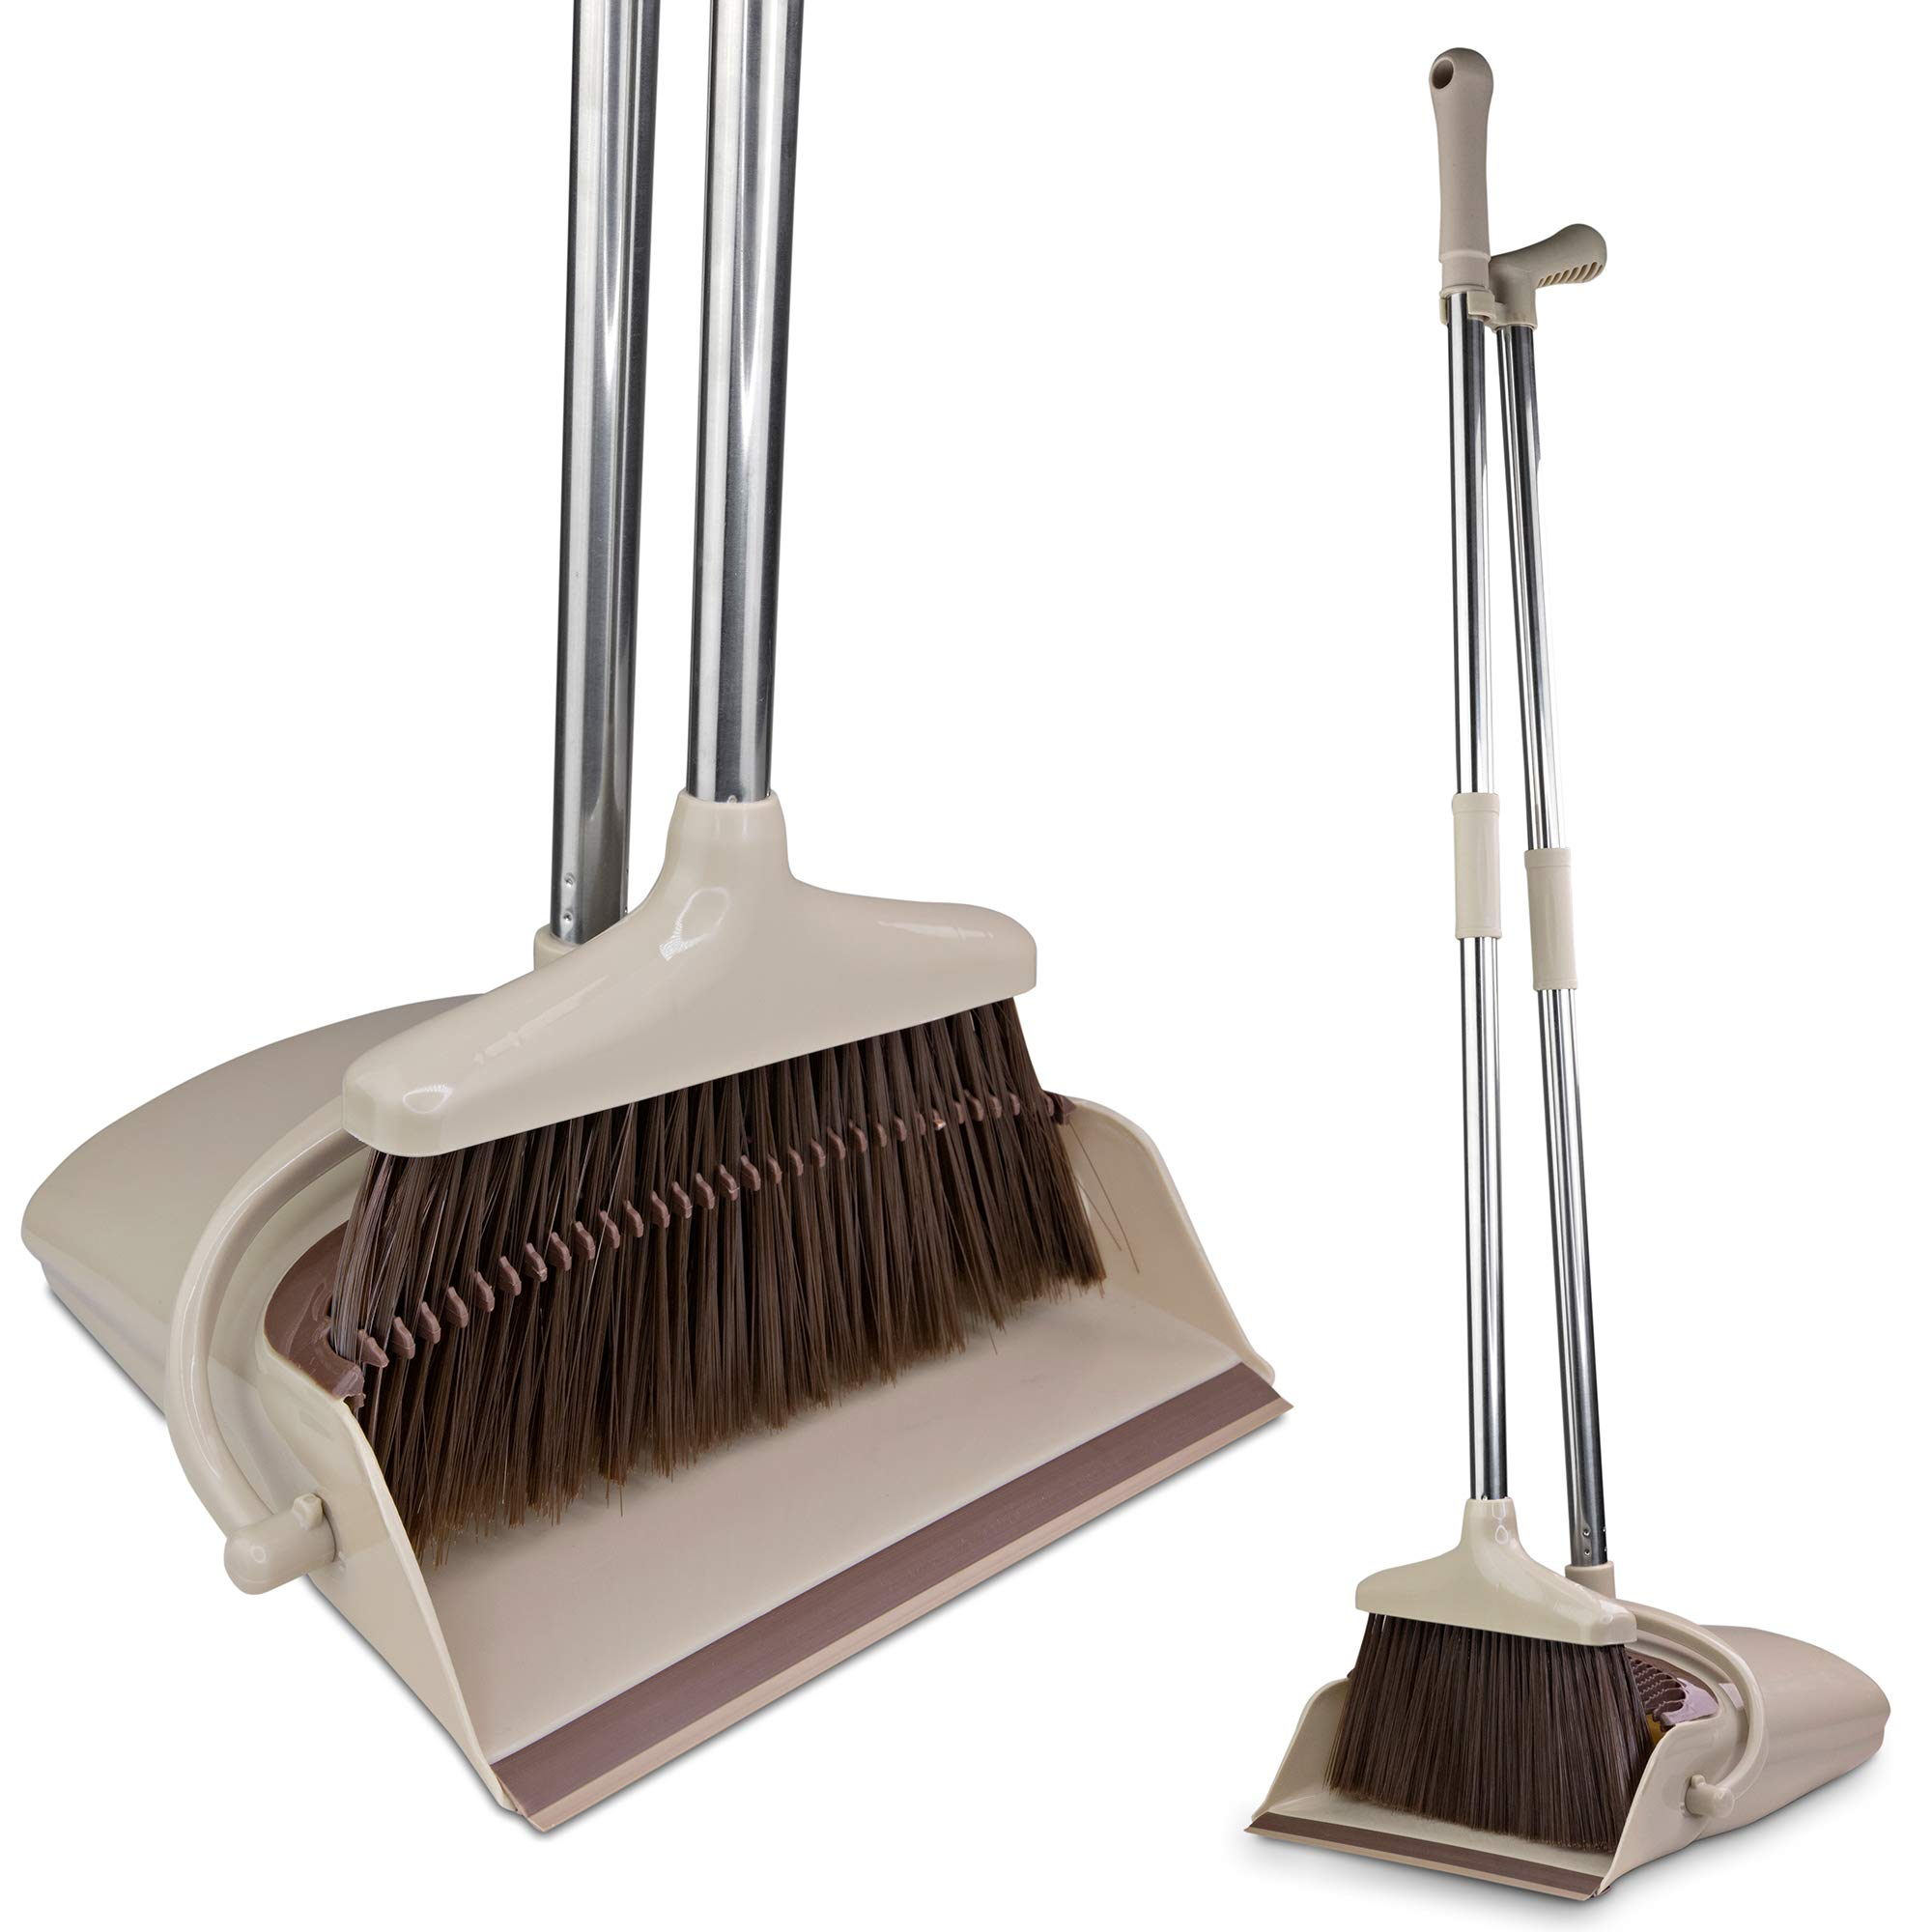 Broom and Dustpan Set [2019 Version] - Stand Up Brush and Dust Pan Combo for Upright Cleaning - Remove Hair with Built-in Wisp Scraper - Kitchen, Outdoor, Hardwood Floor & Garage Tiles Clean Supplies by Belleford (Image #2)